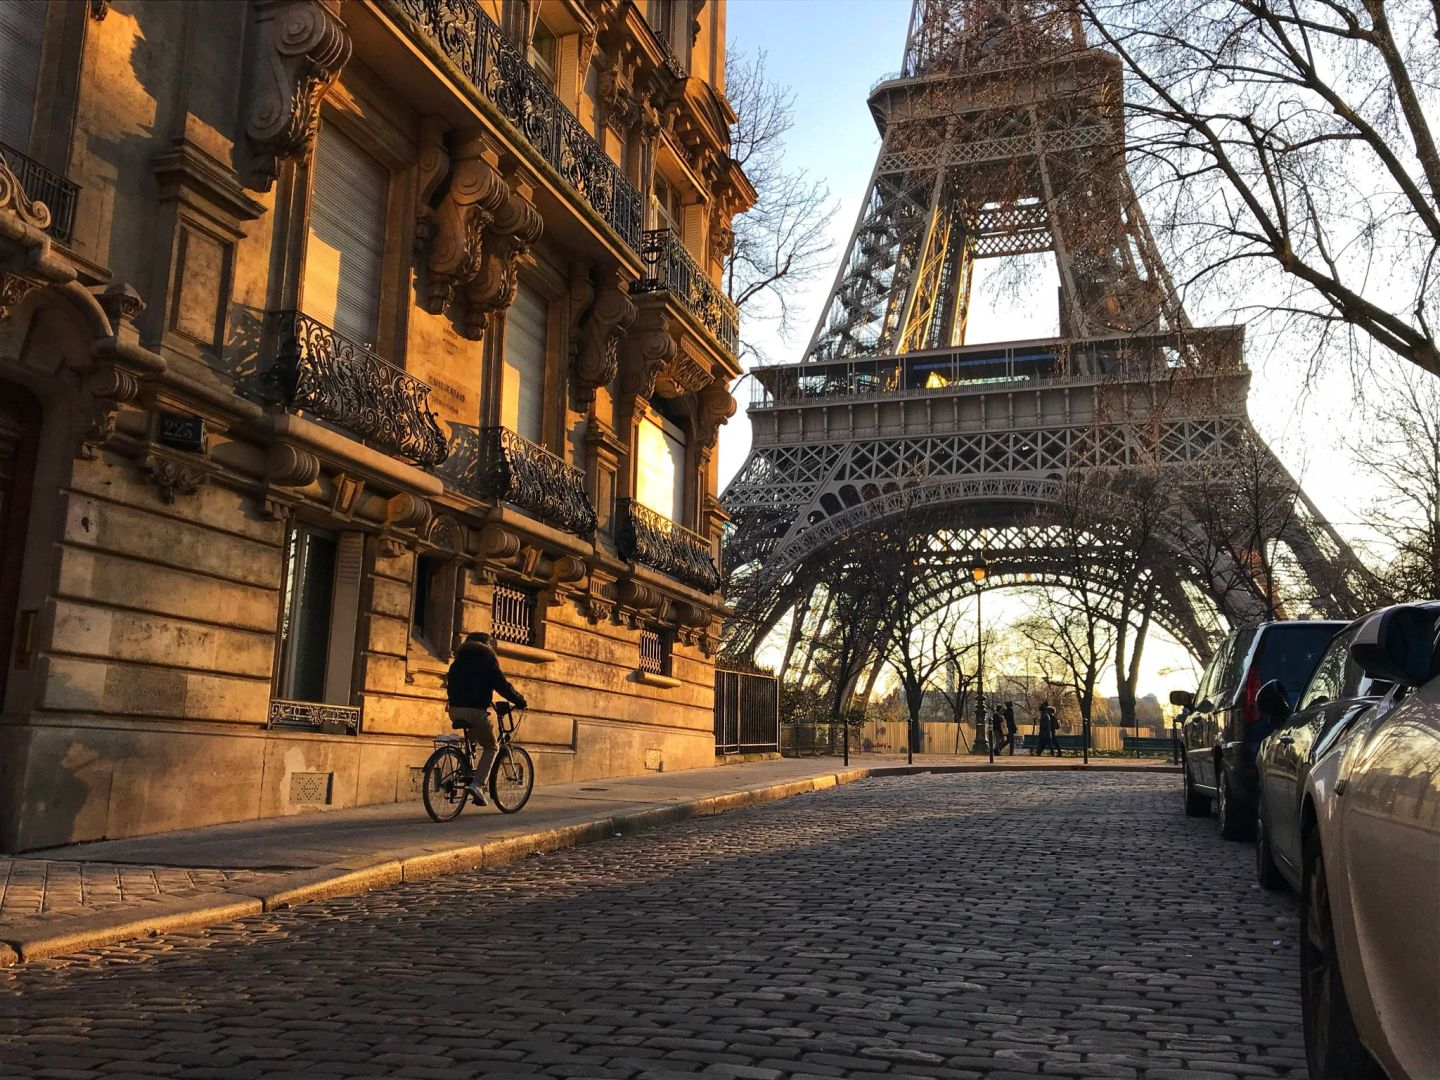 Cycling at Sunset at The Eiffel Tower